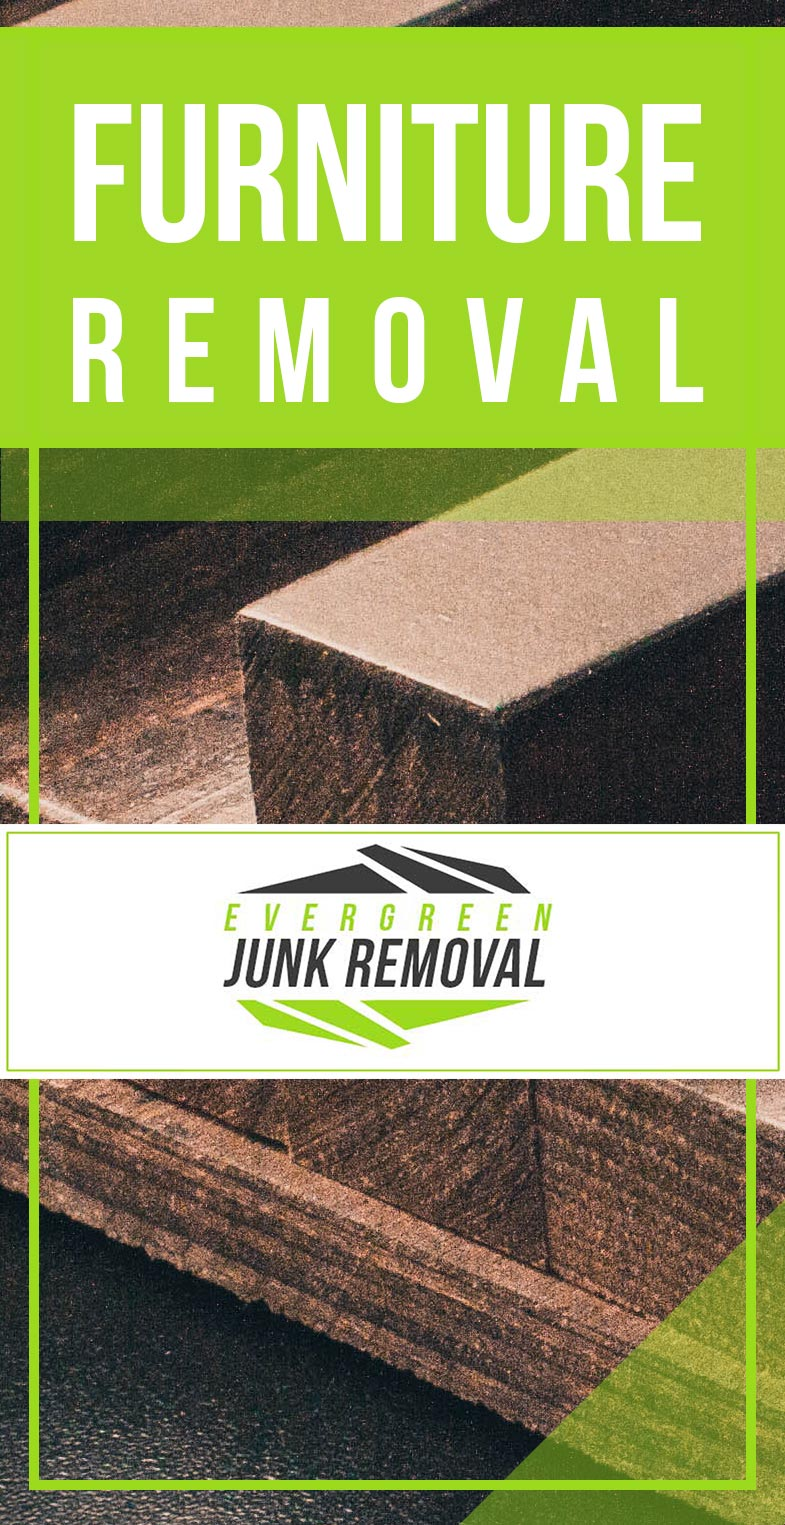 Junk Removal Gulf Stream Furniture Removal